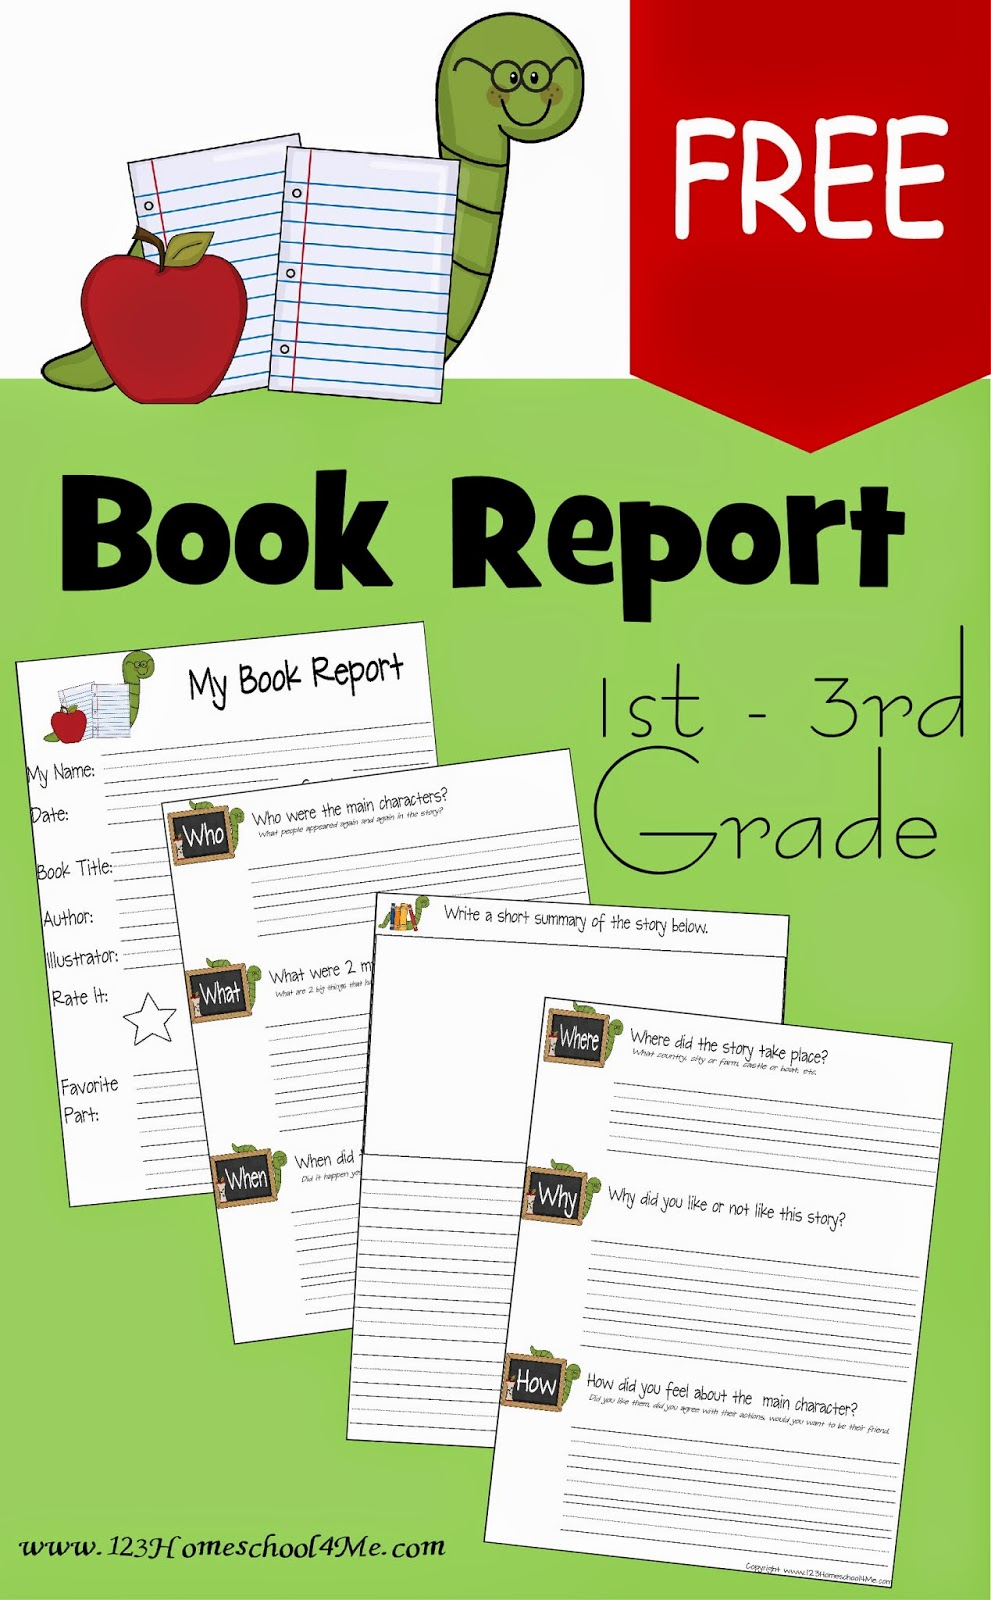 kids cookbook template - free book report template